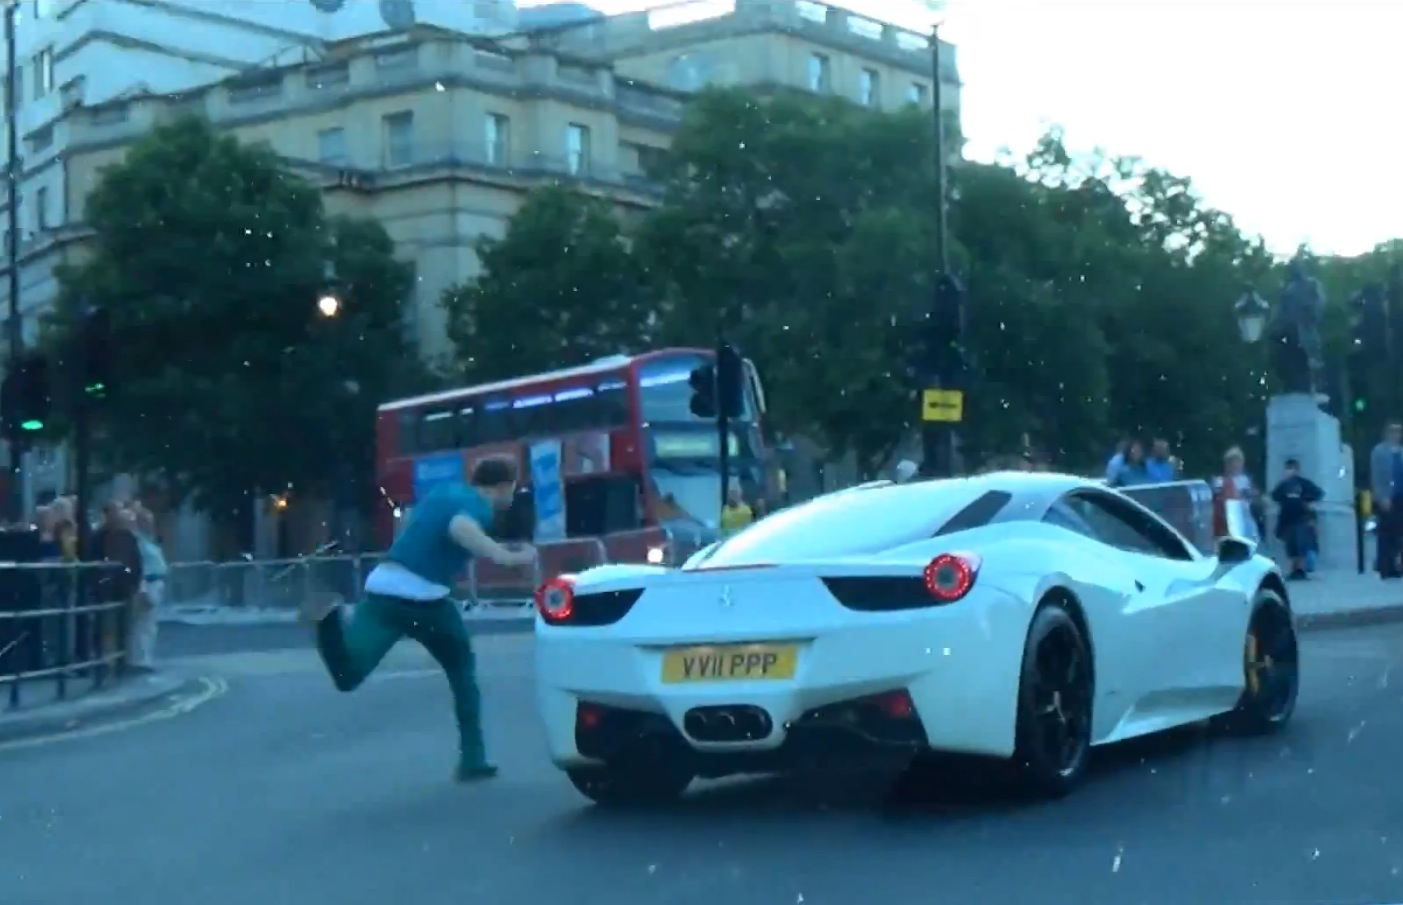 Drunk Guy Has Epic Fail While Chasing Cars Of The London